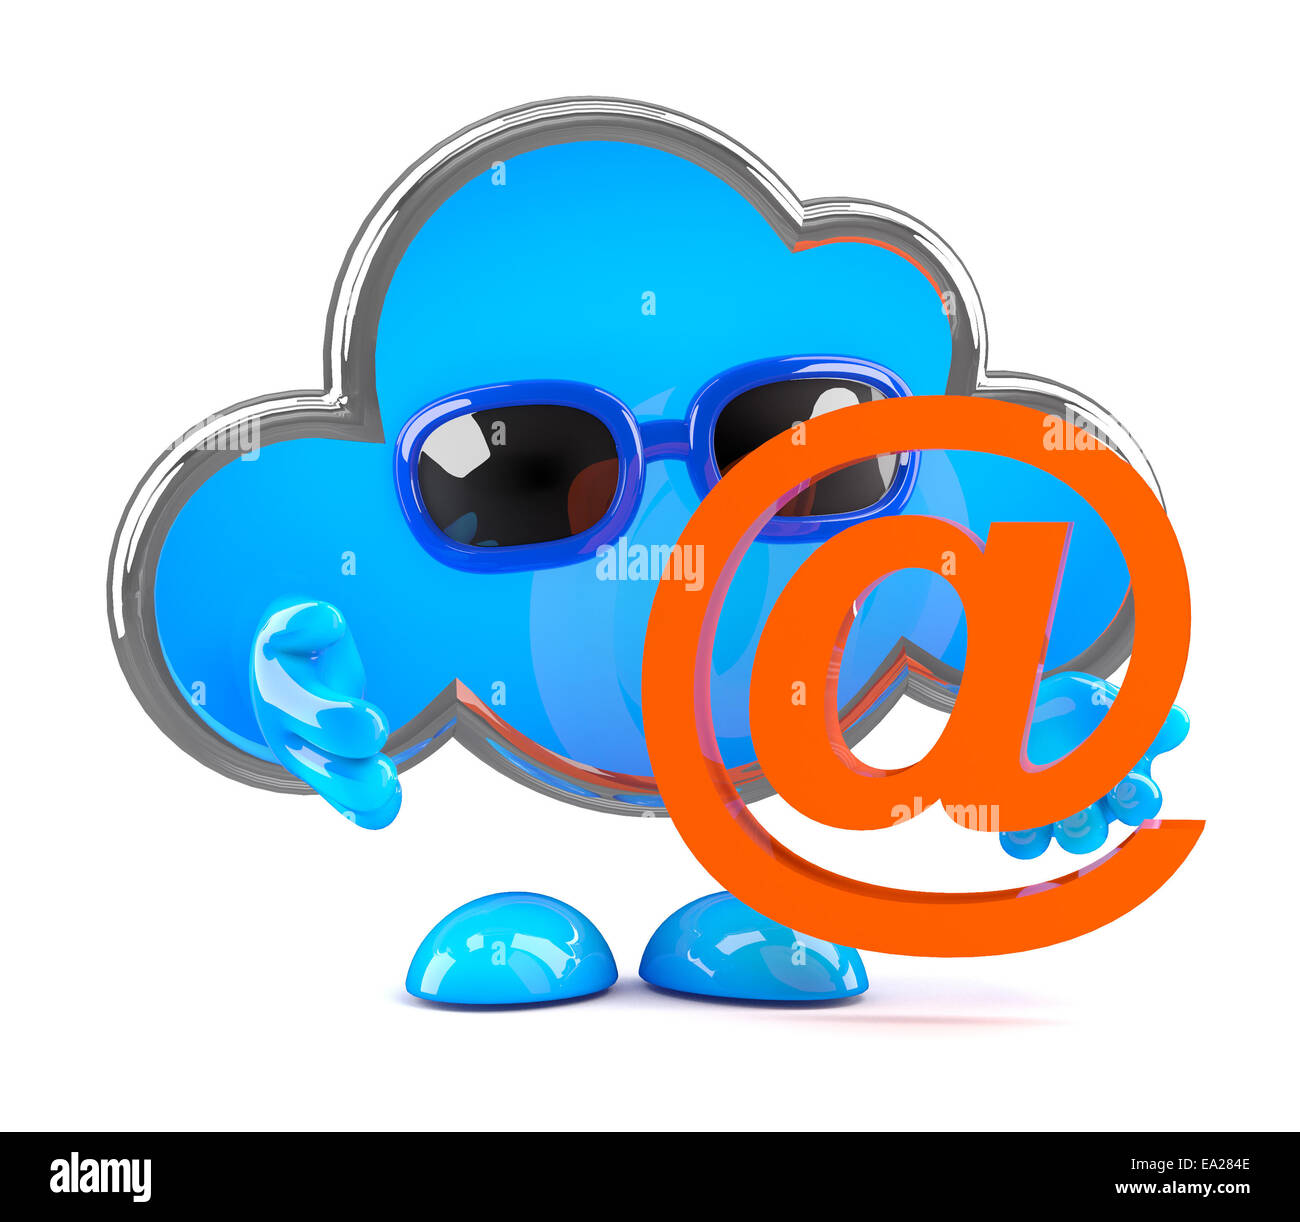 Email Address Stock Photos Email Address Stock Images Alamy